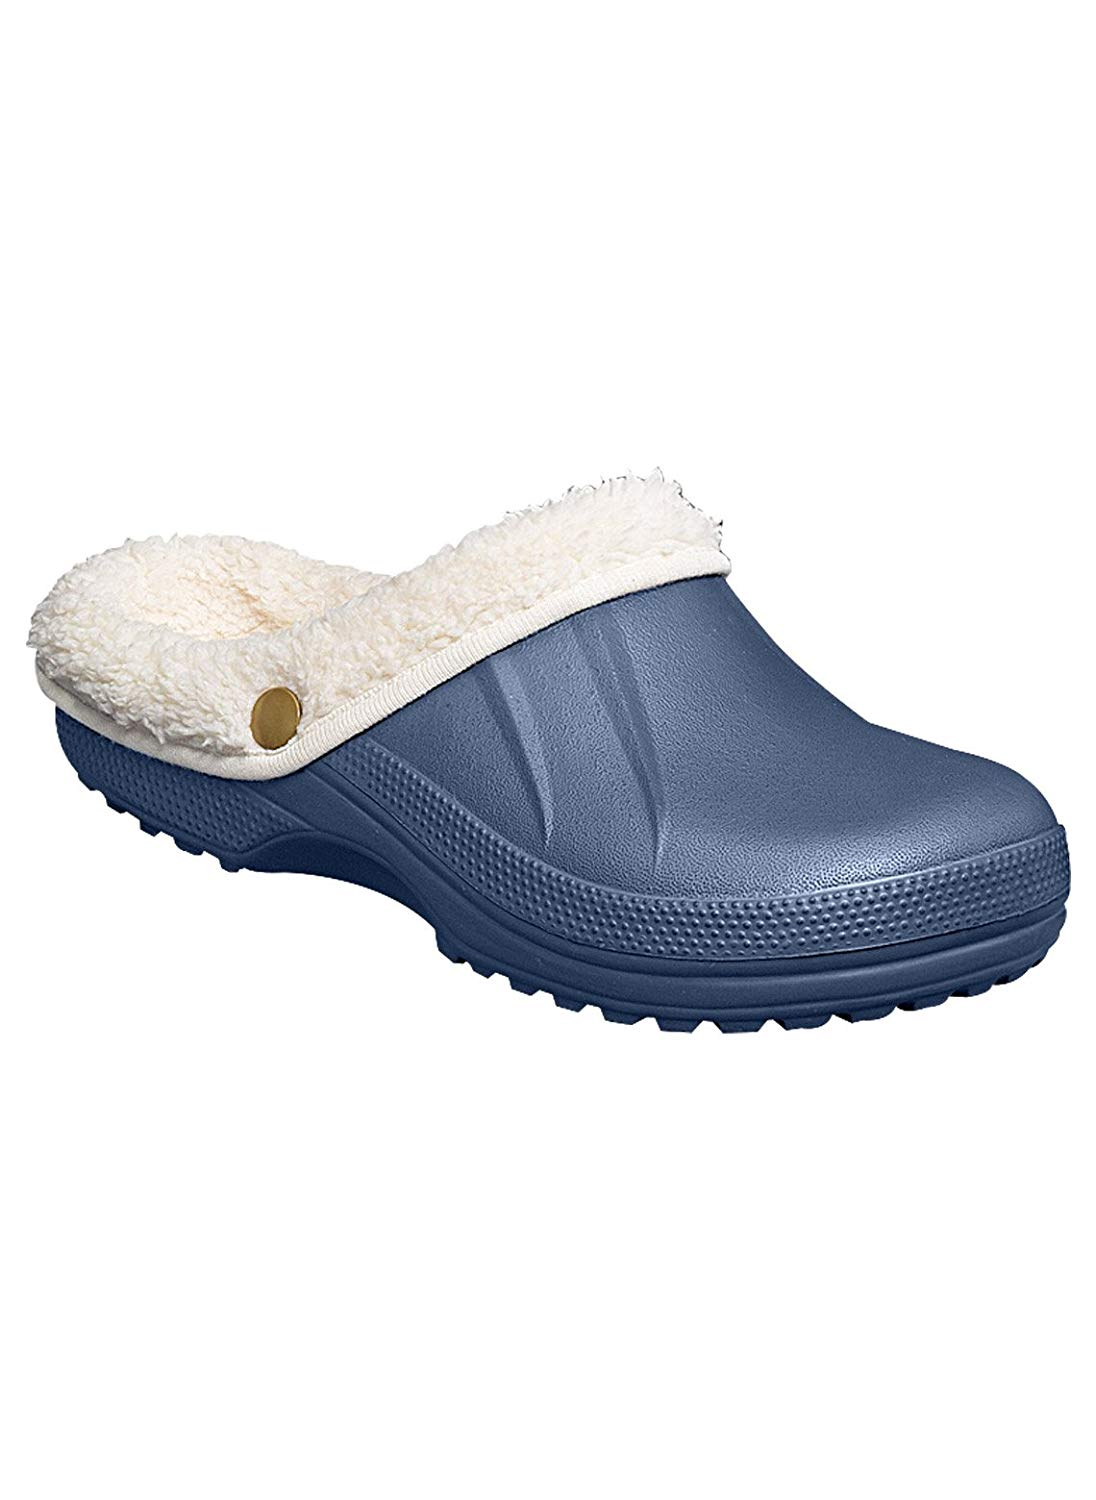 101 BEACH Toddler Slip On Solid Fleece Lined Clogs